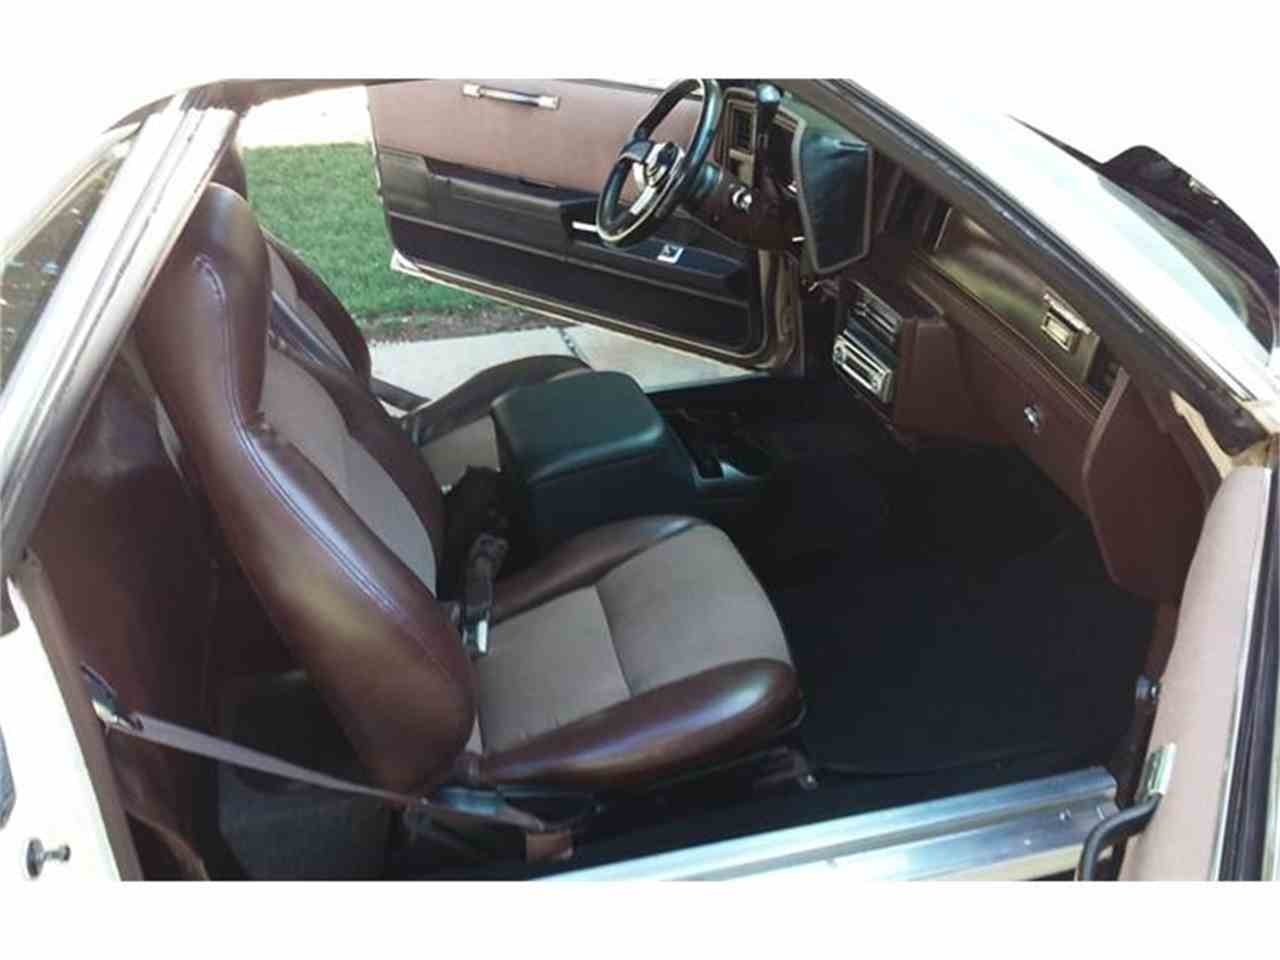 Large Picture of '83 Chevrolet El Camino located in California - $8,700.00 Offered by a Private Seller - J05V